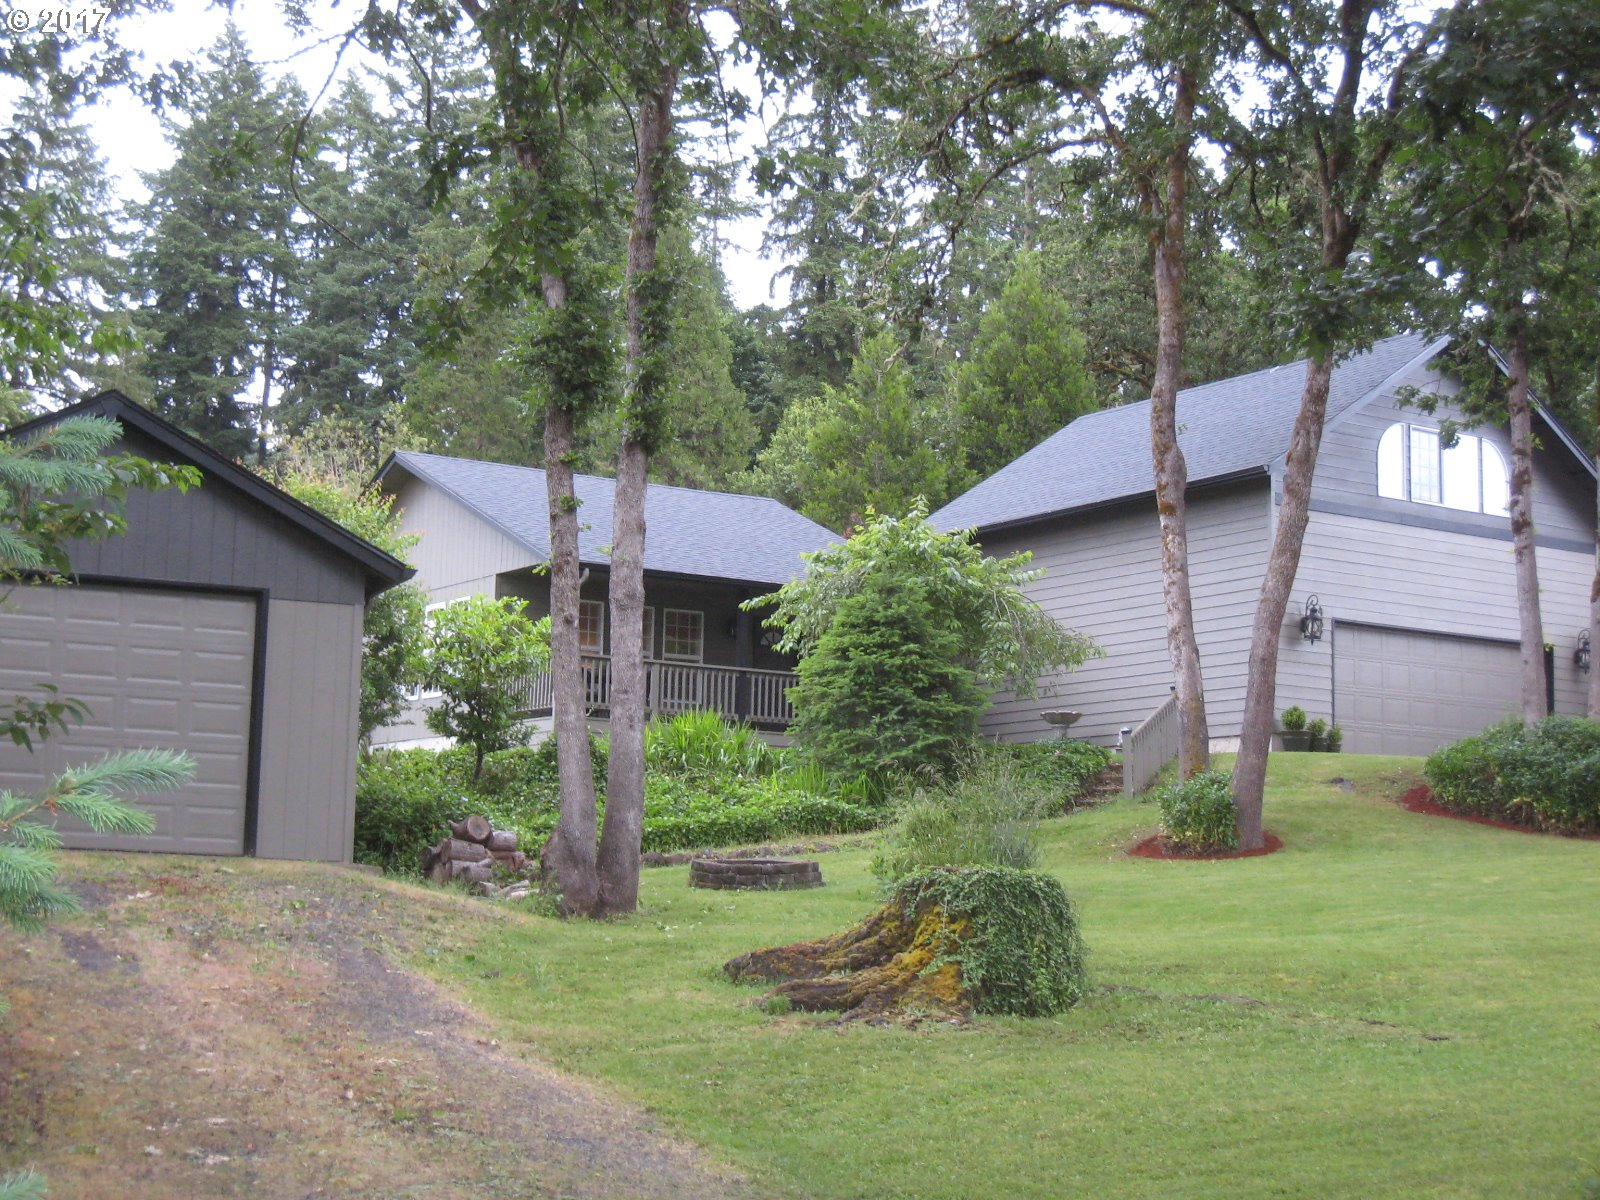 487 S 70TH PL, Springfield, OR 97478